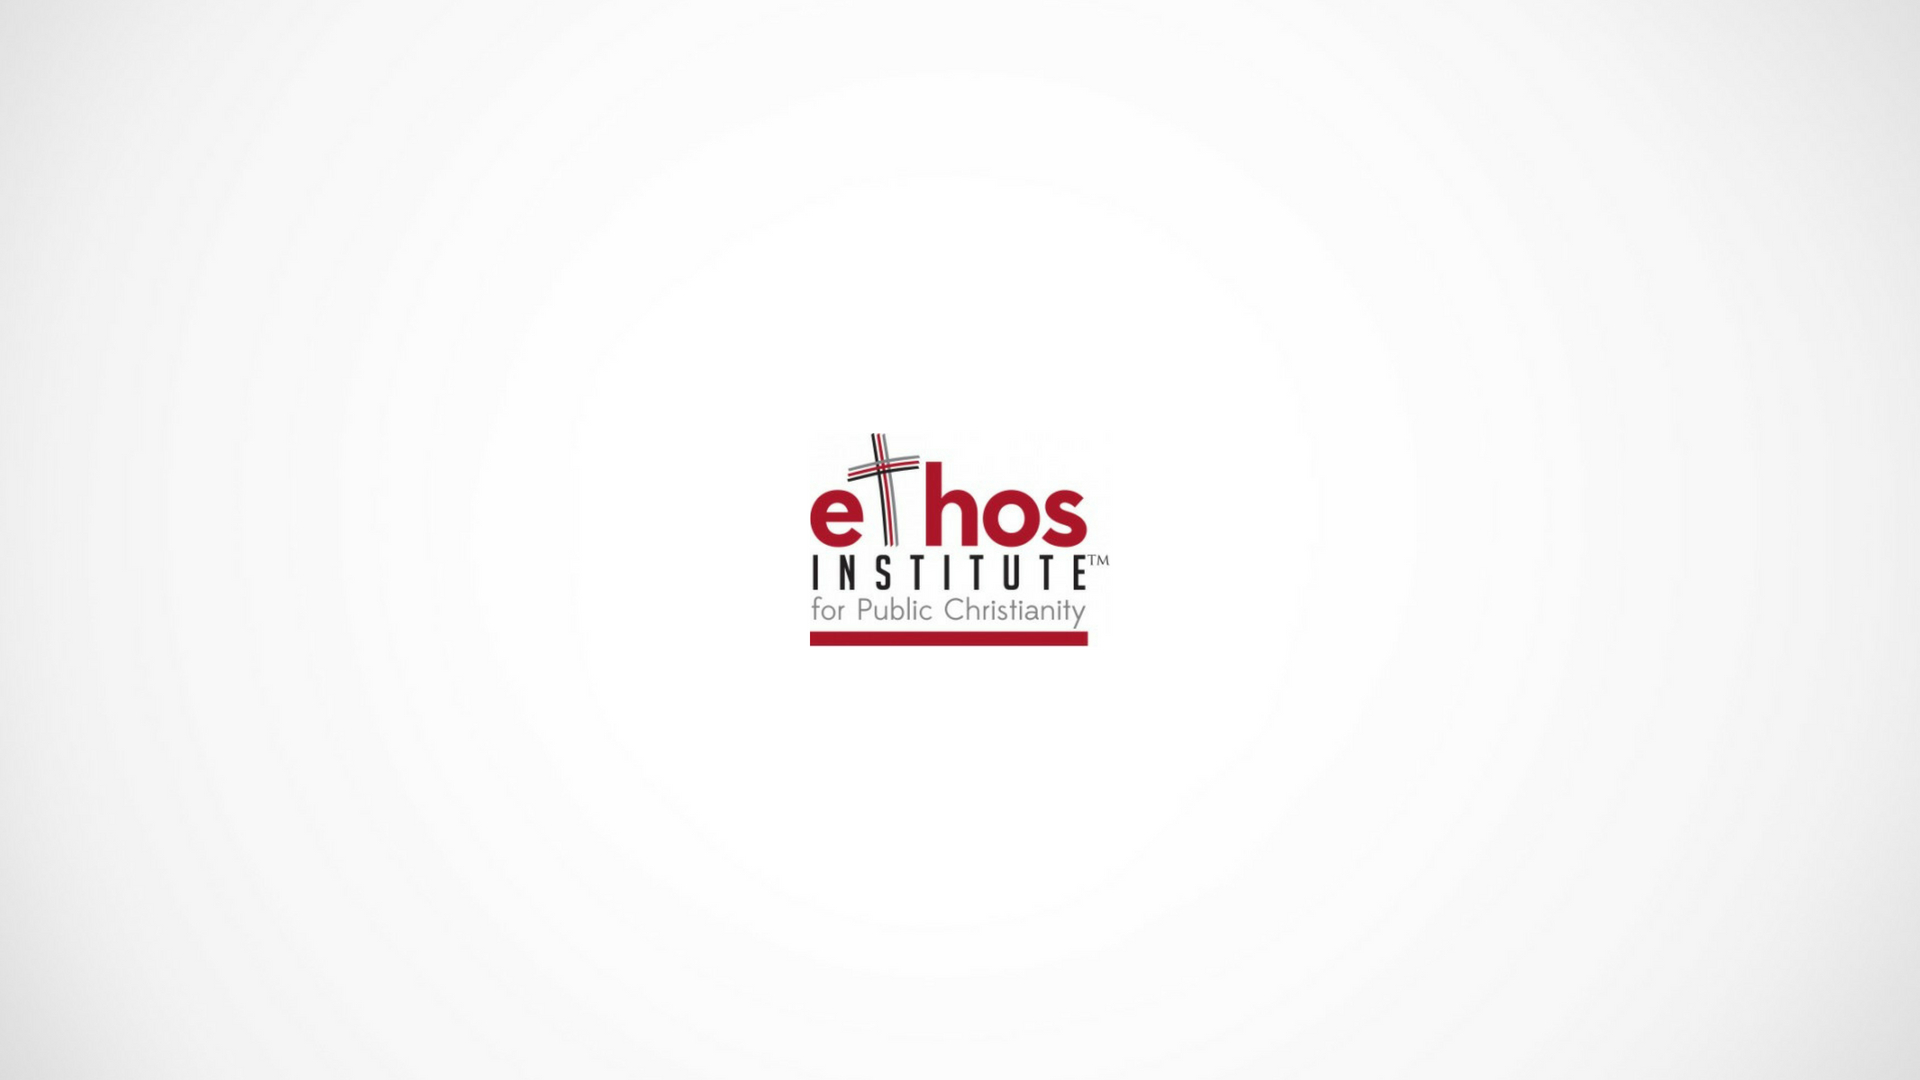 Ethos Institute